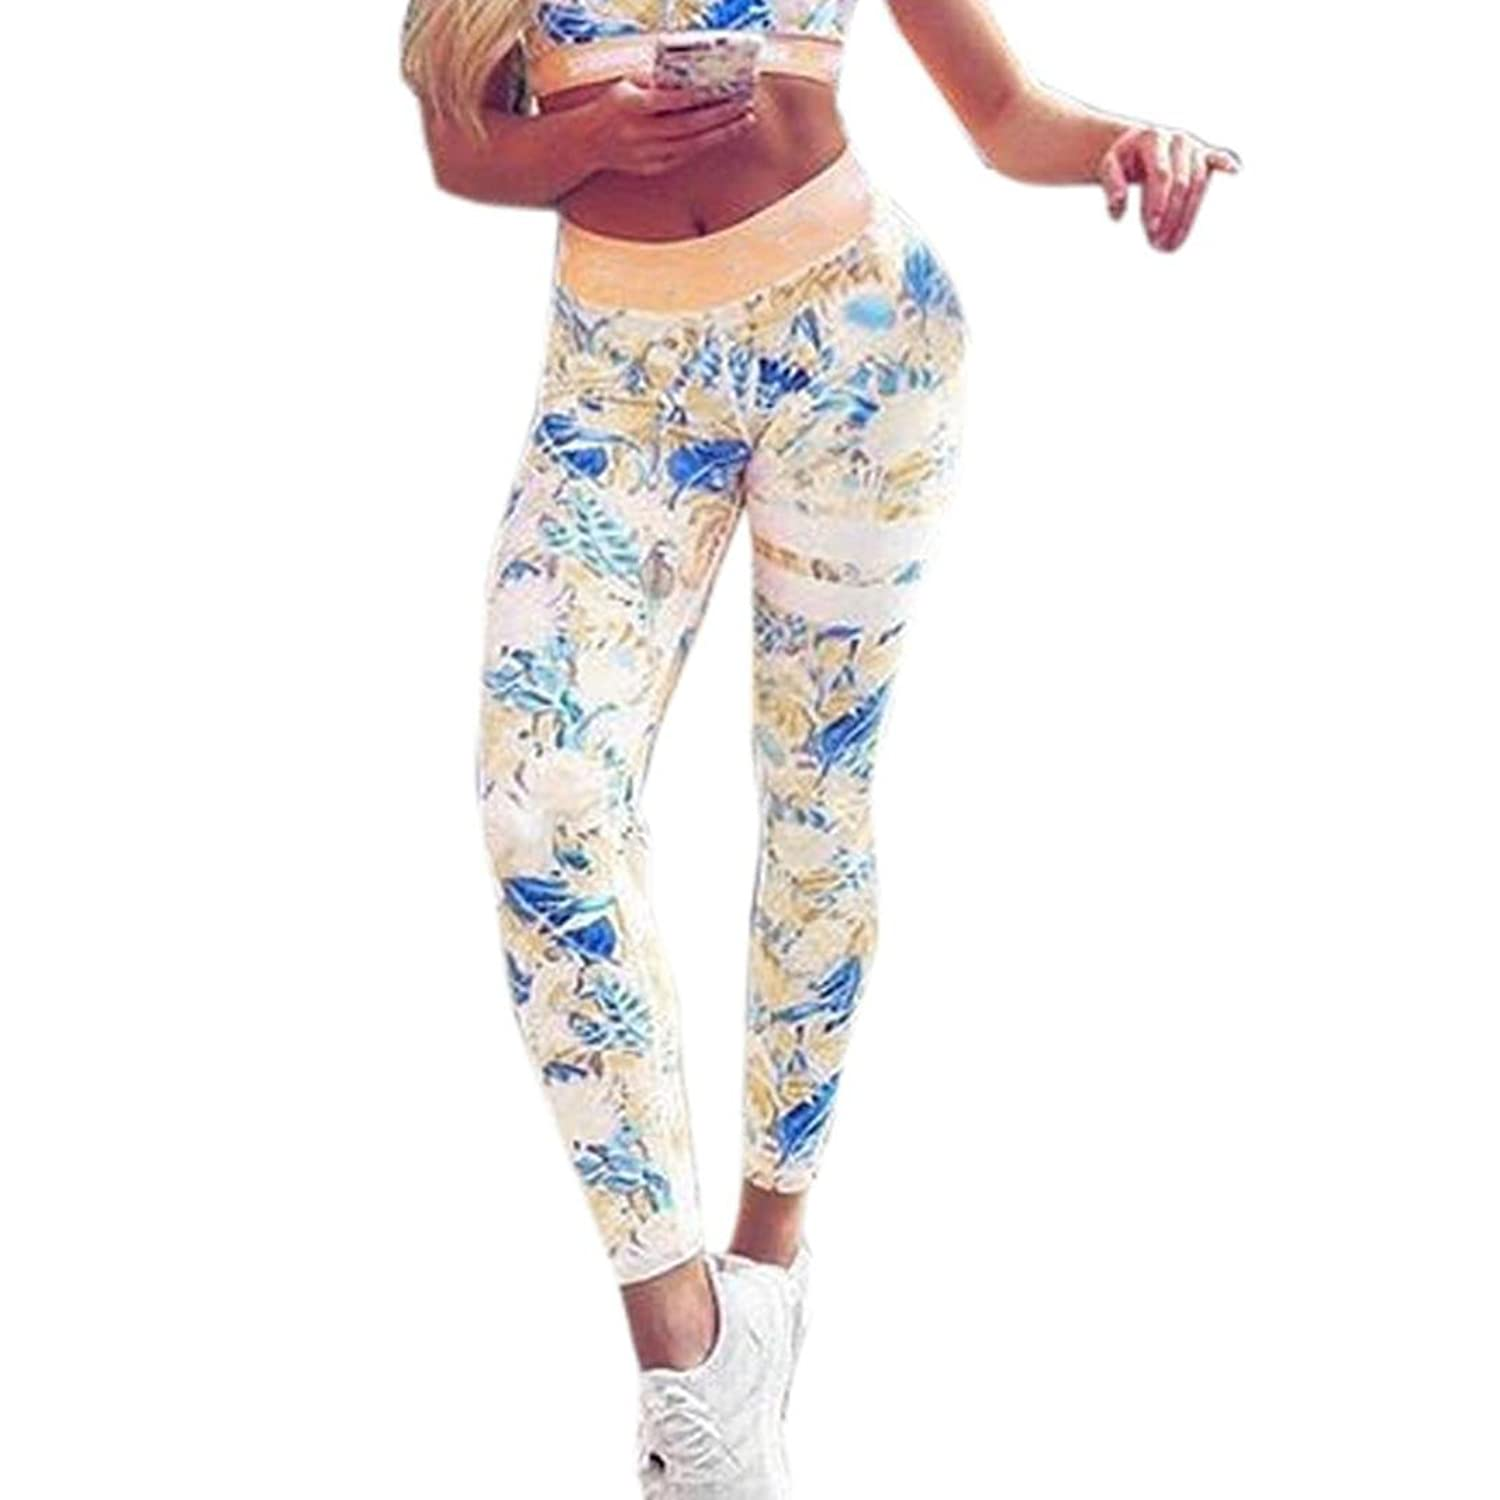 2a263397cfba5 Gillberry Women Print Leggings Sports Gym Yoga Workout Fitness Athletic  Pants  5WarK0505018  -  8.99